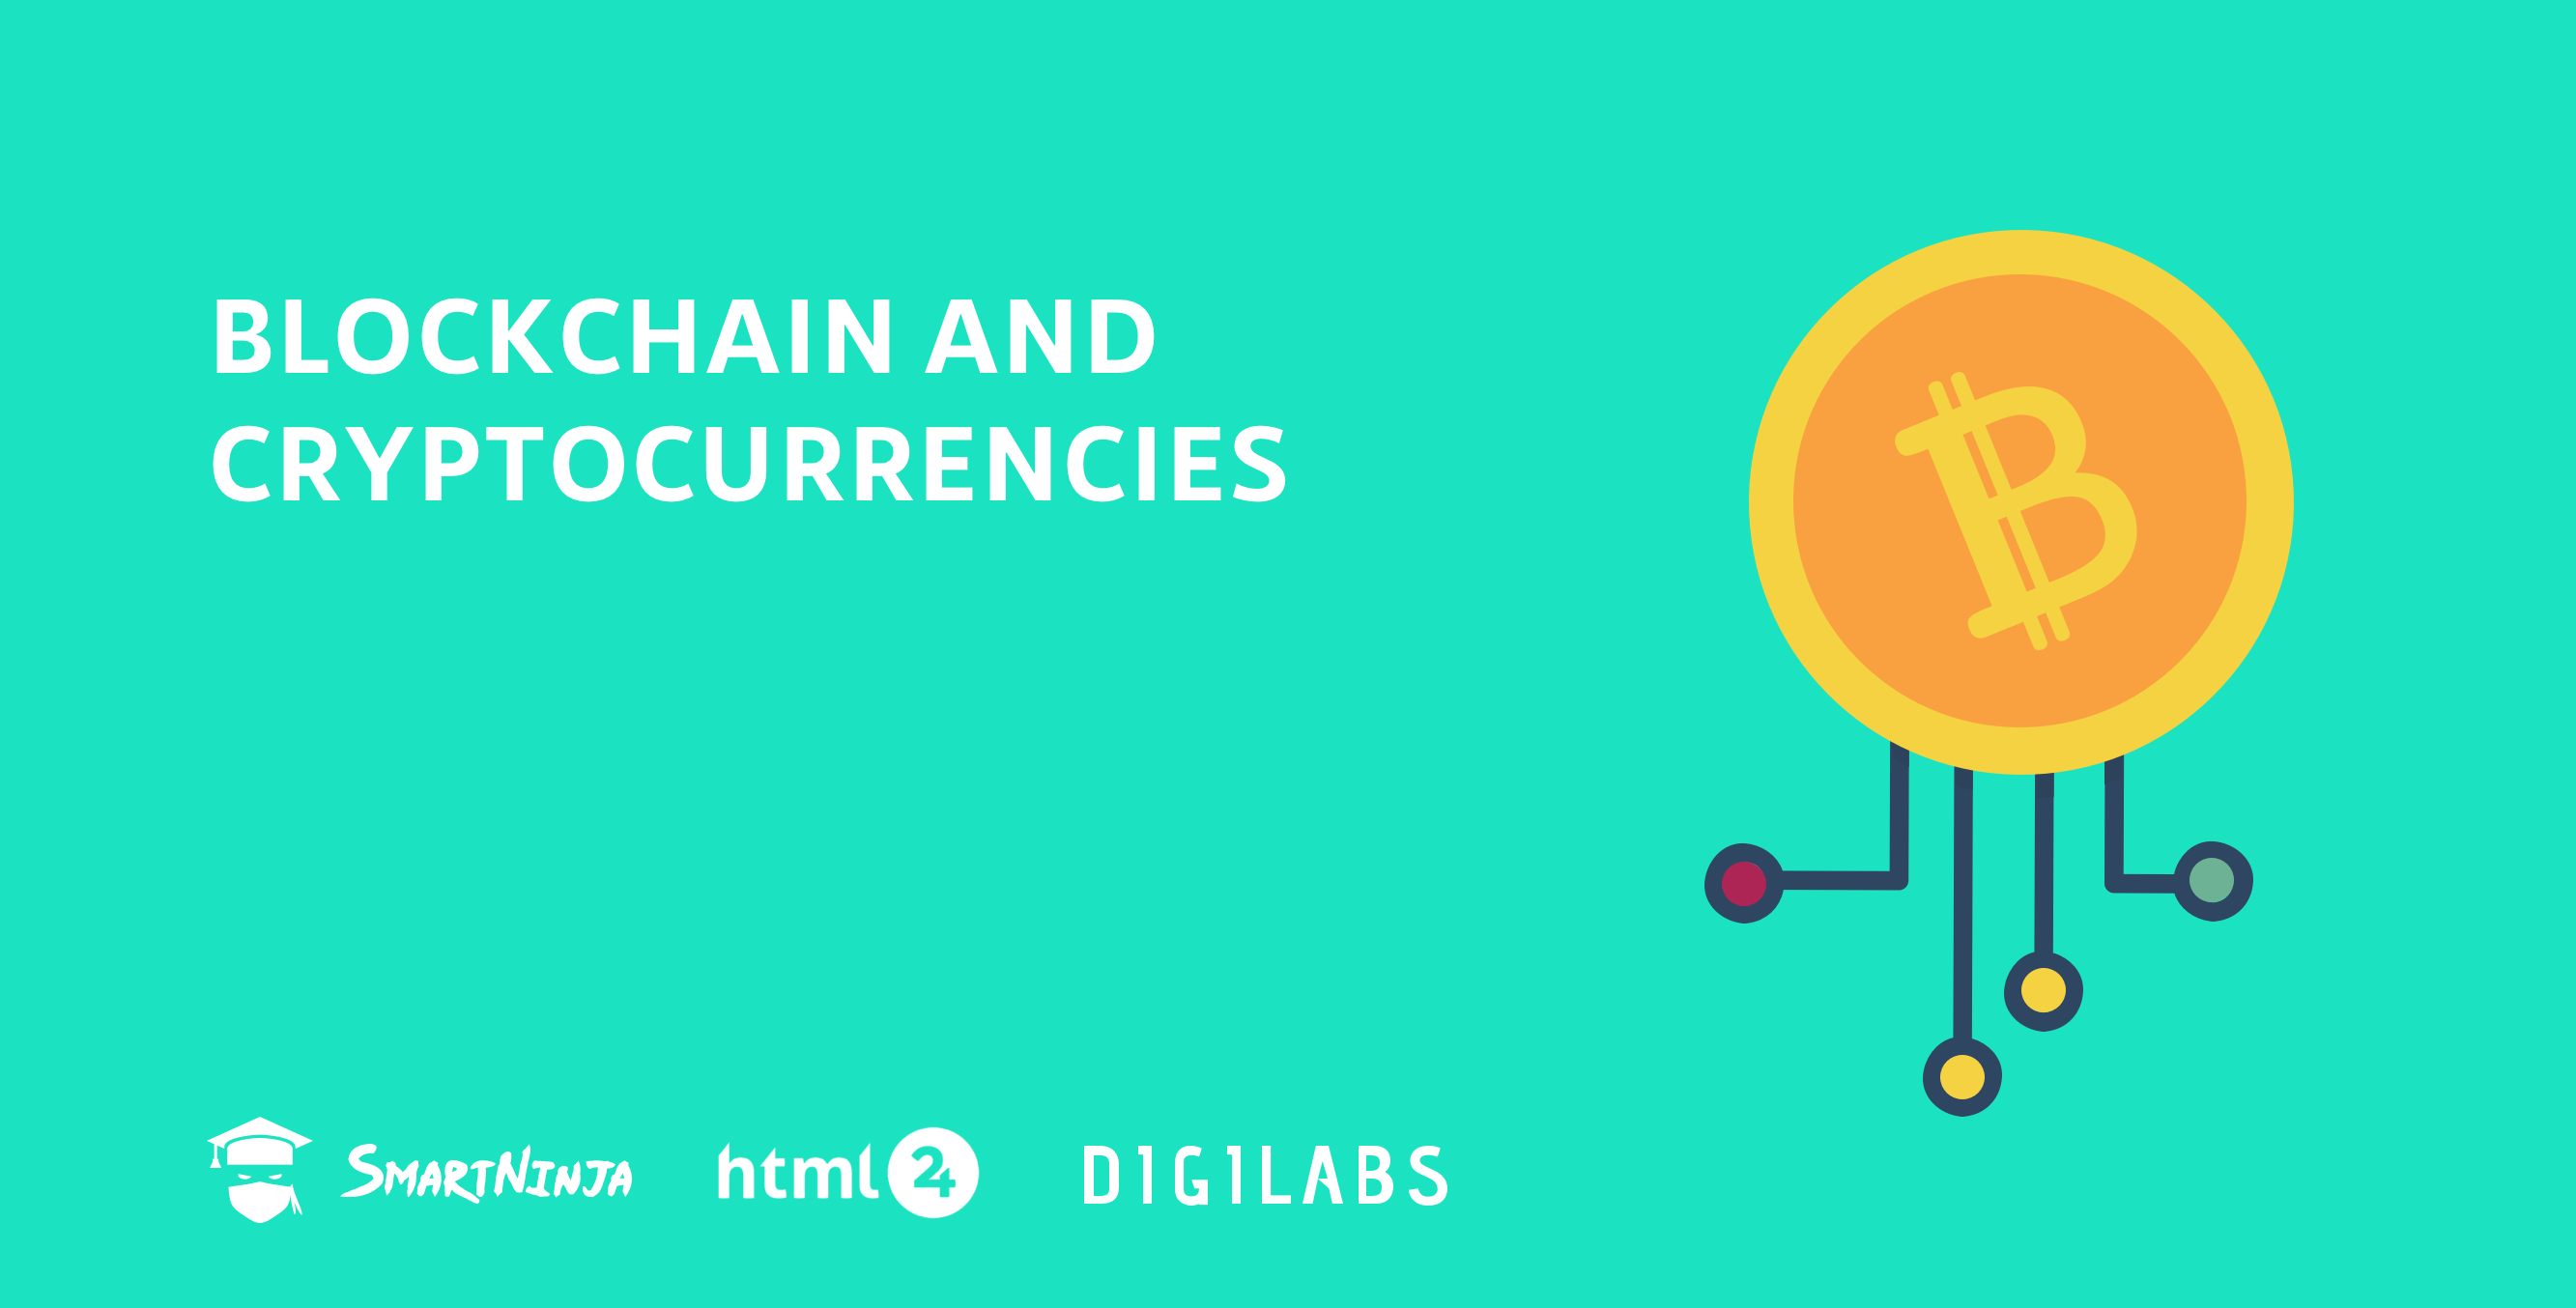 BLOCKCHAIN AND CRYPTOCURRENCIES